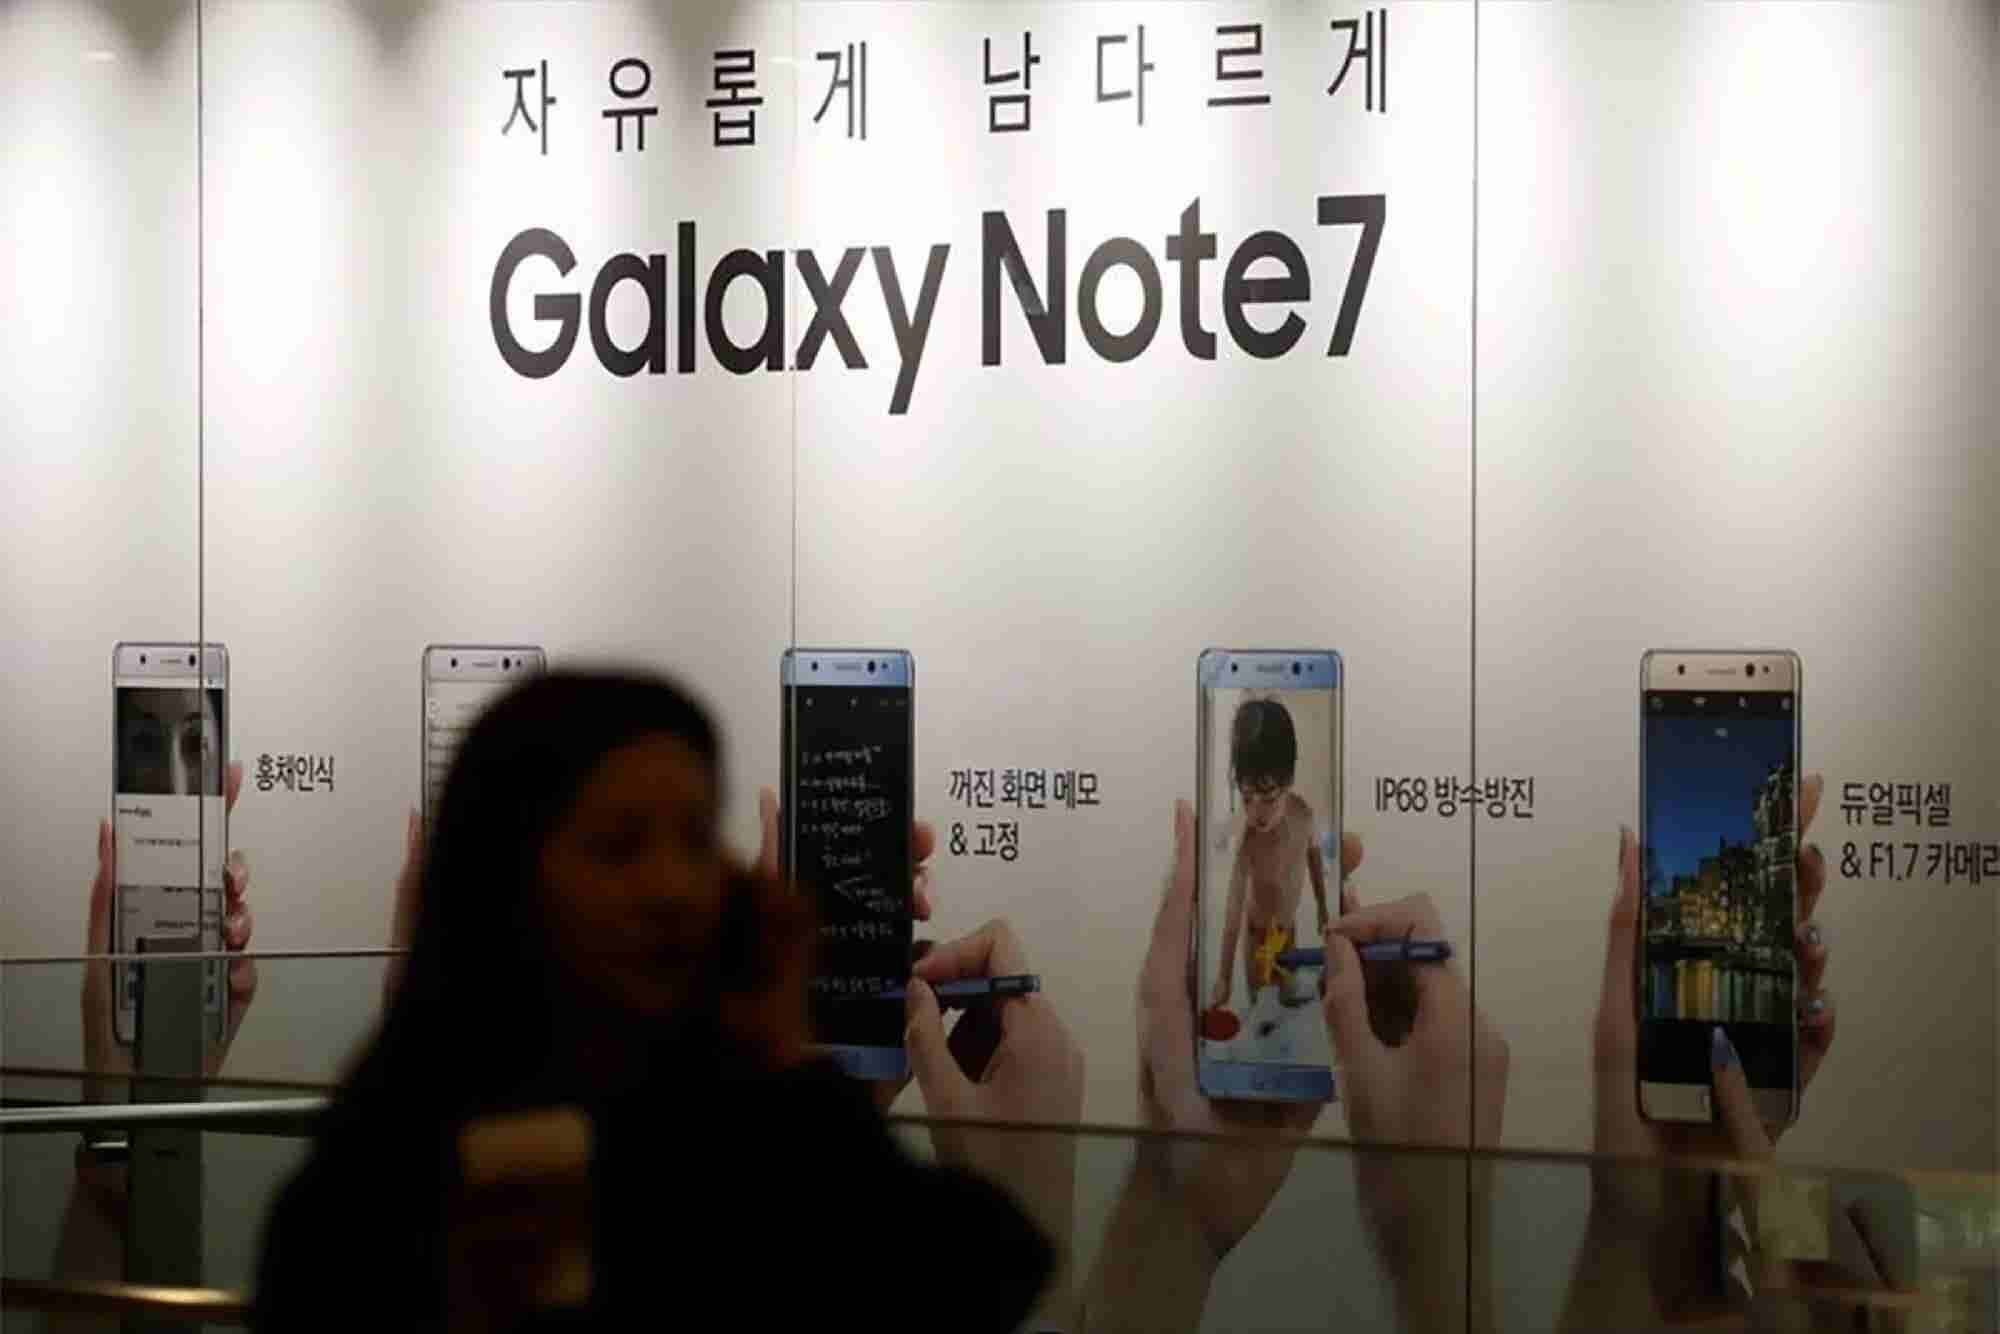 Note 7 Fiasco Could Burn a $17 Billion Hole in Samsung